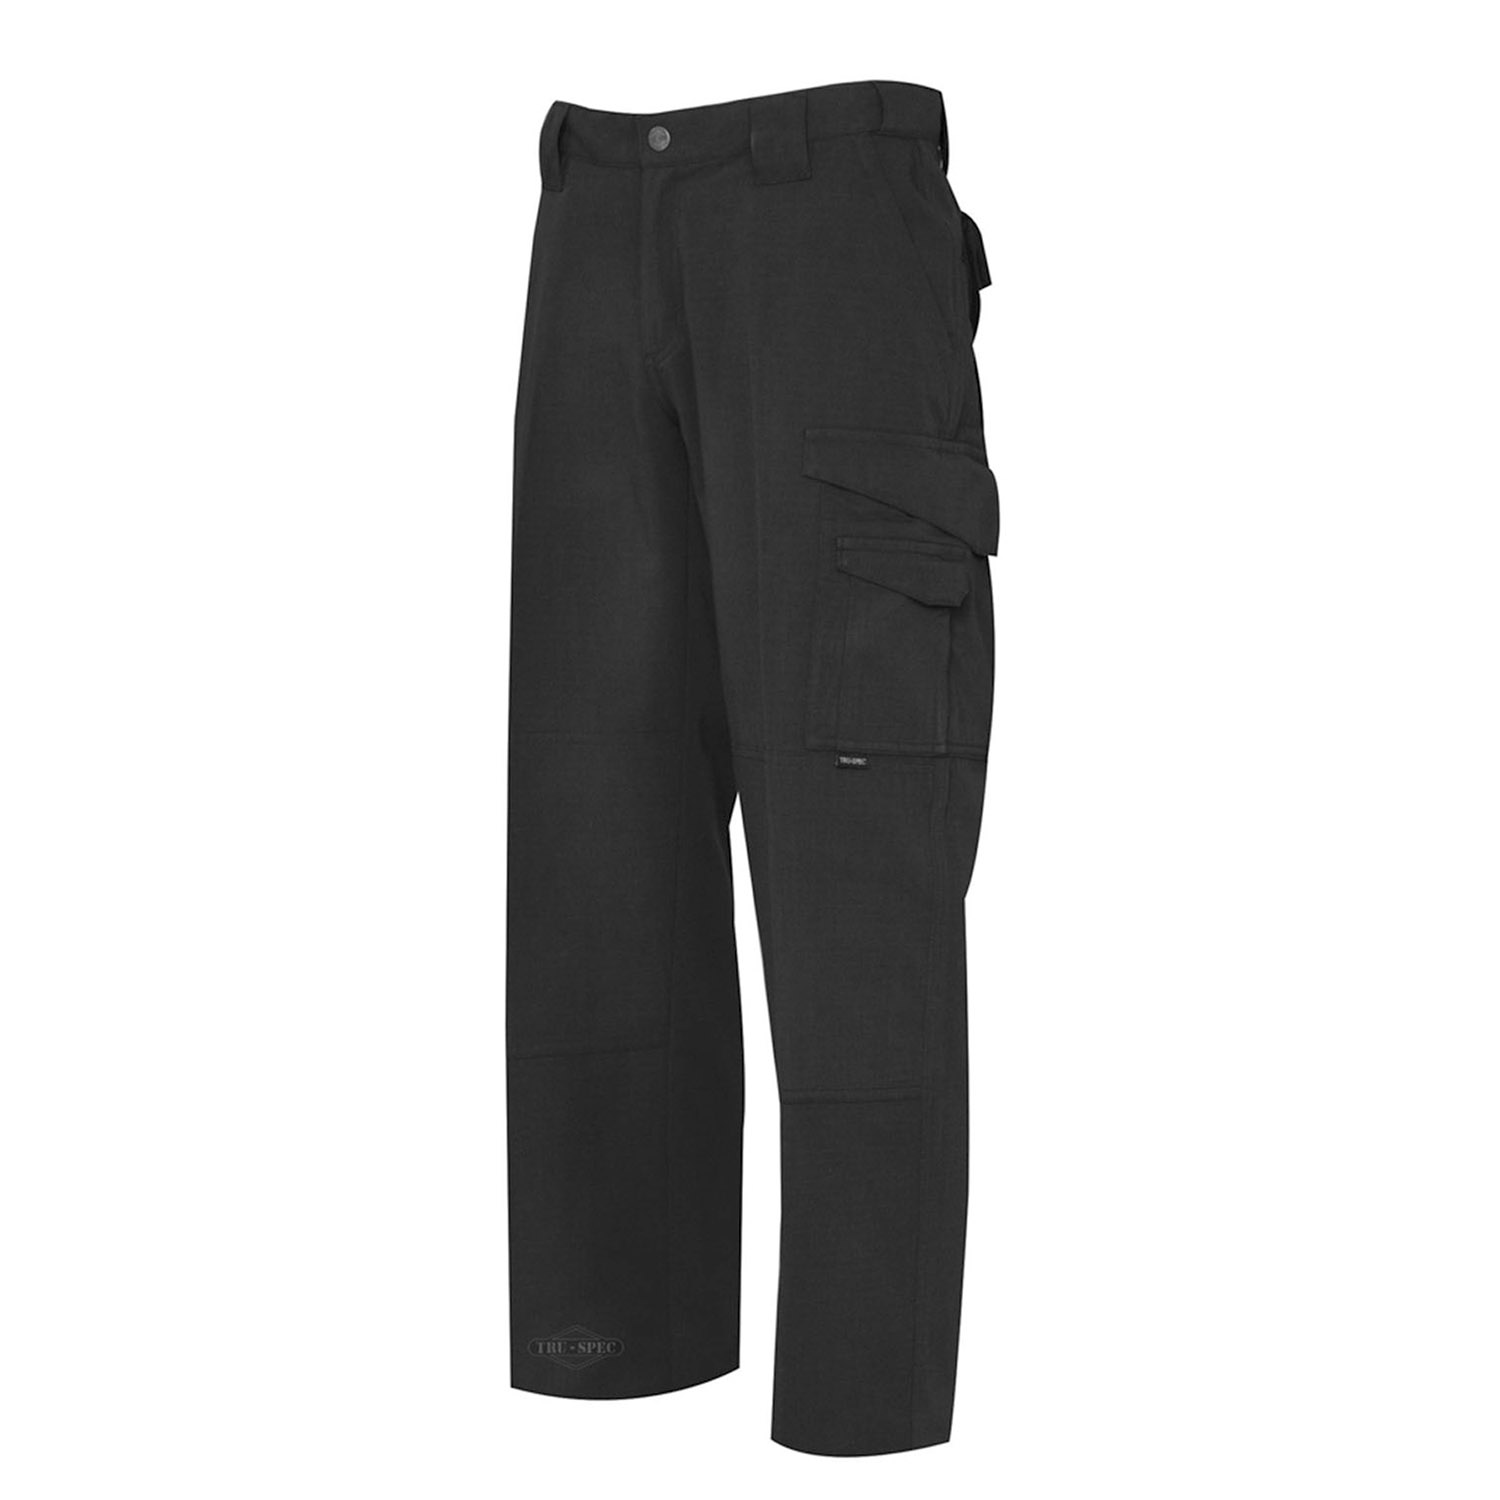 Tru-Spec 24-7 Women's Polyester-Cotton Ripstop Pants